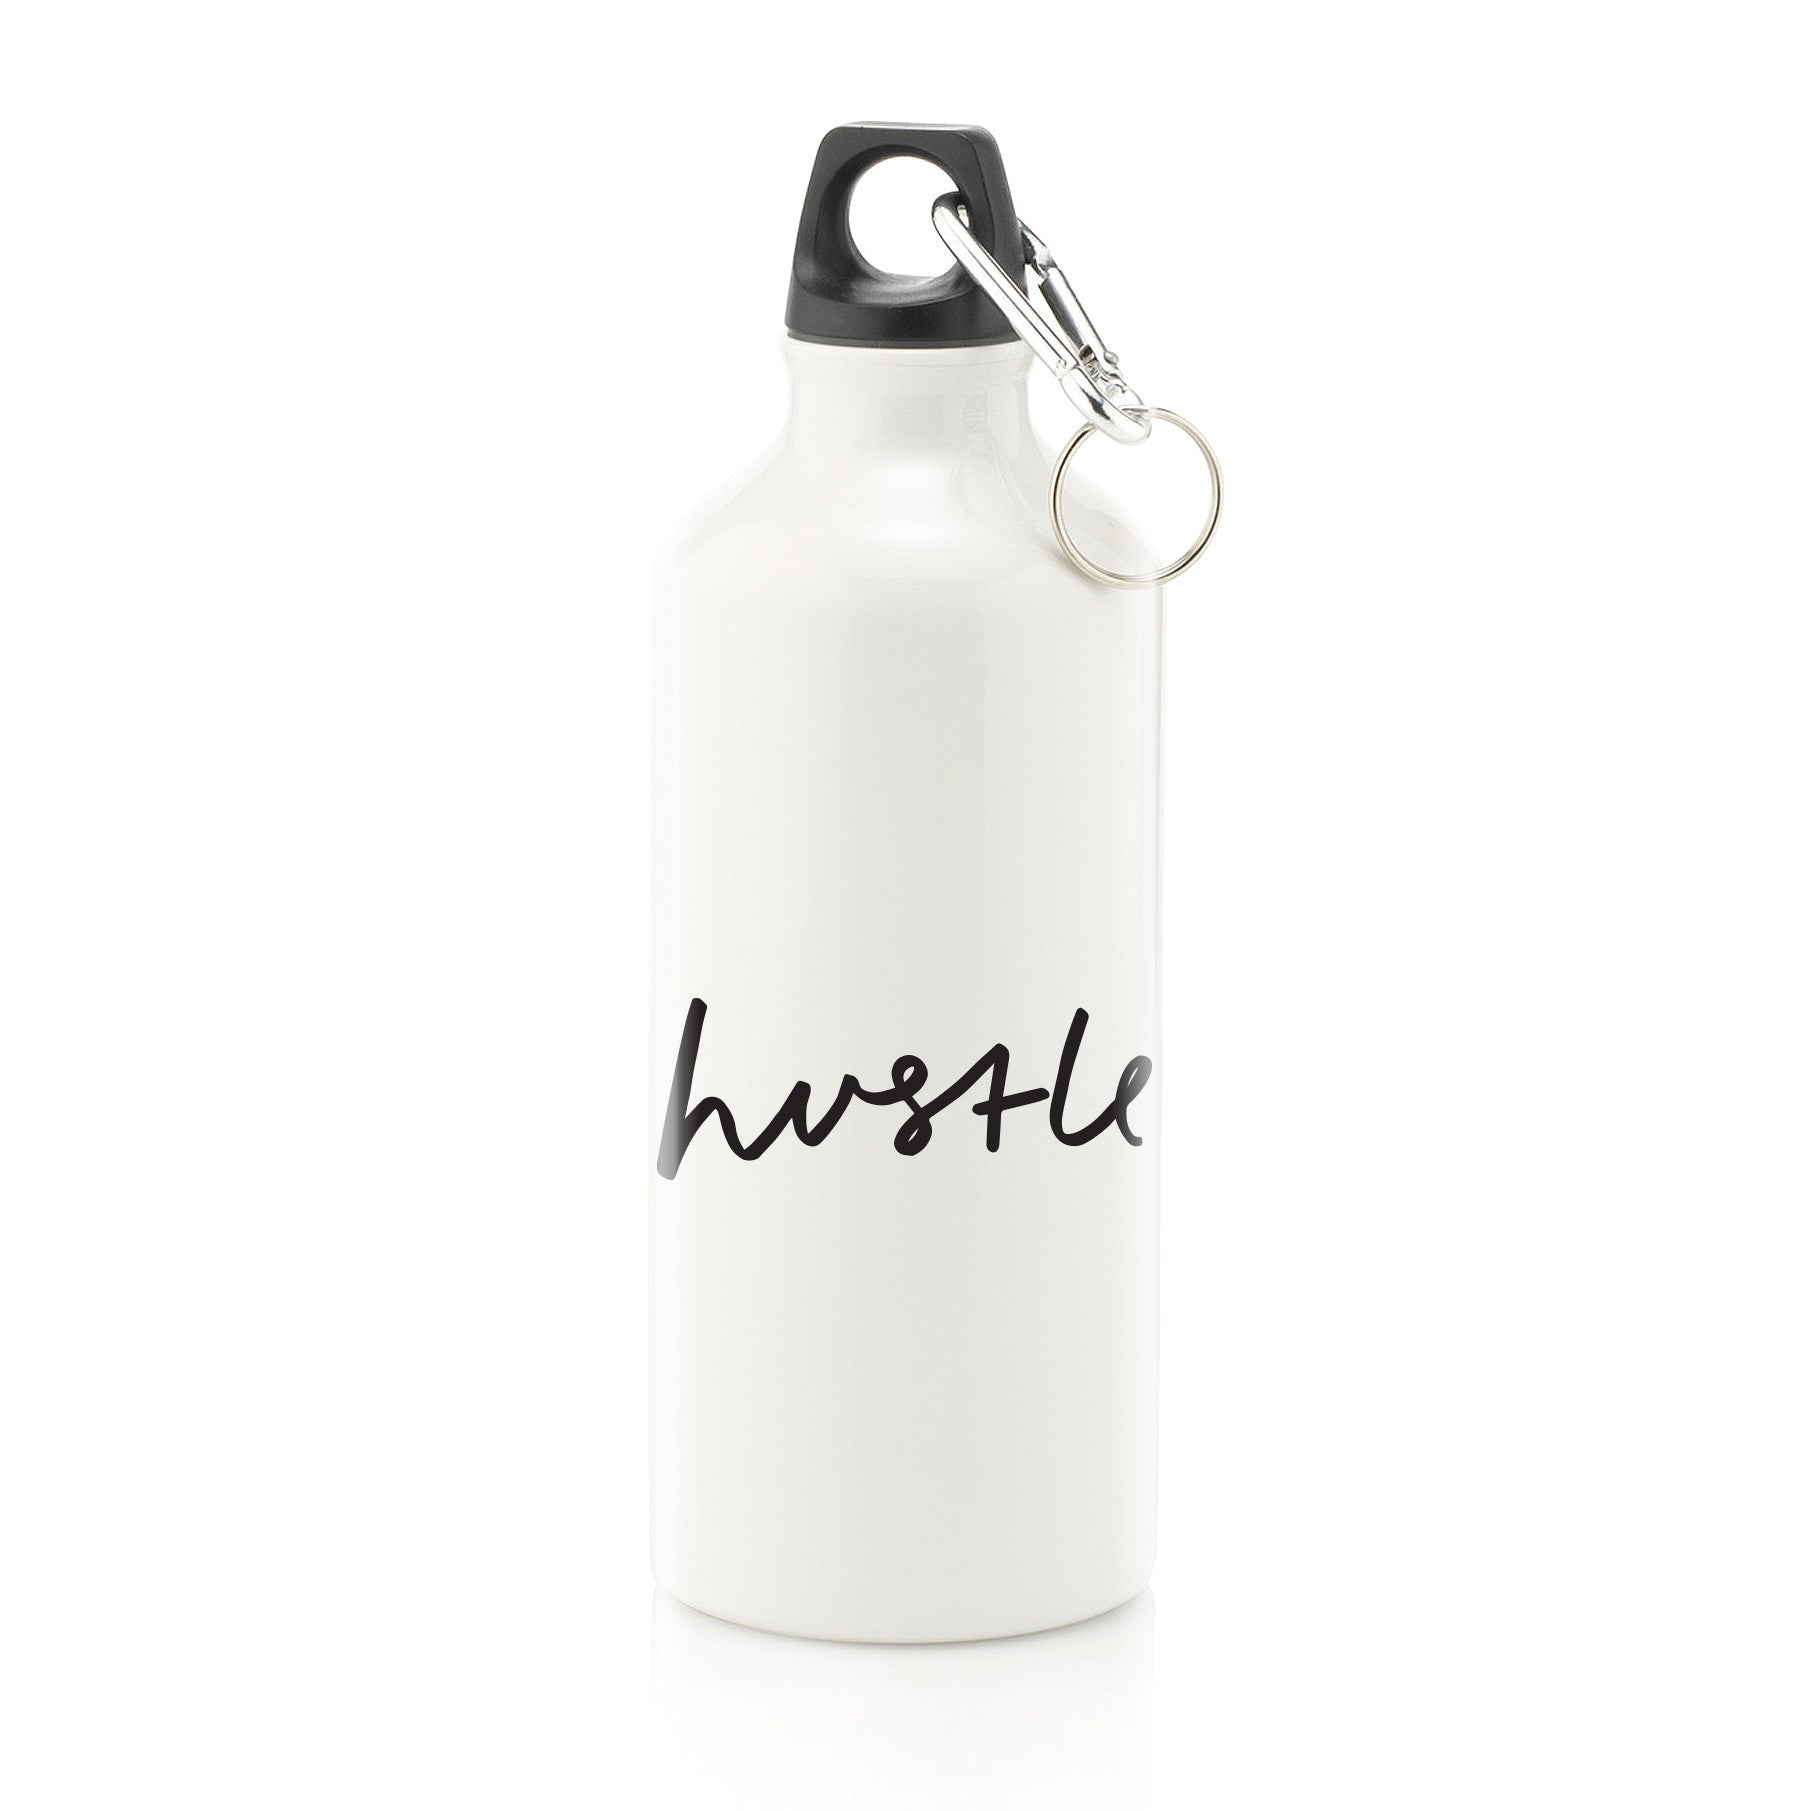 Hustle Water Bottle